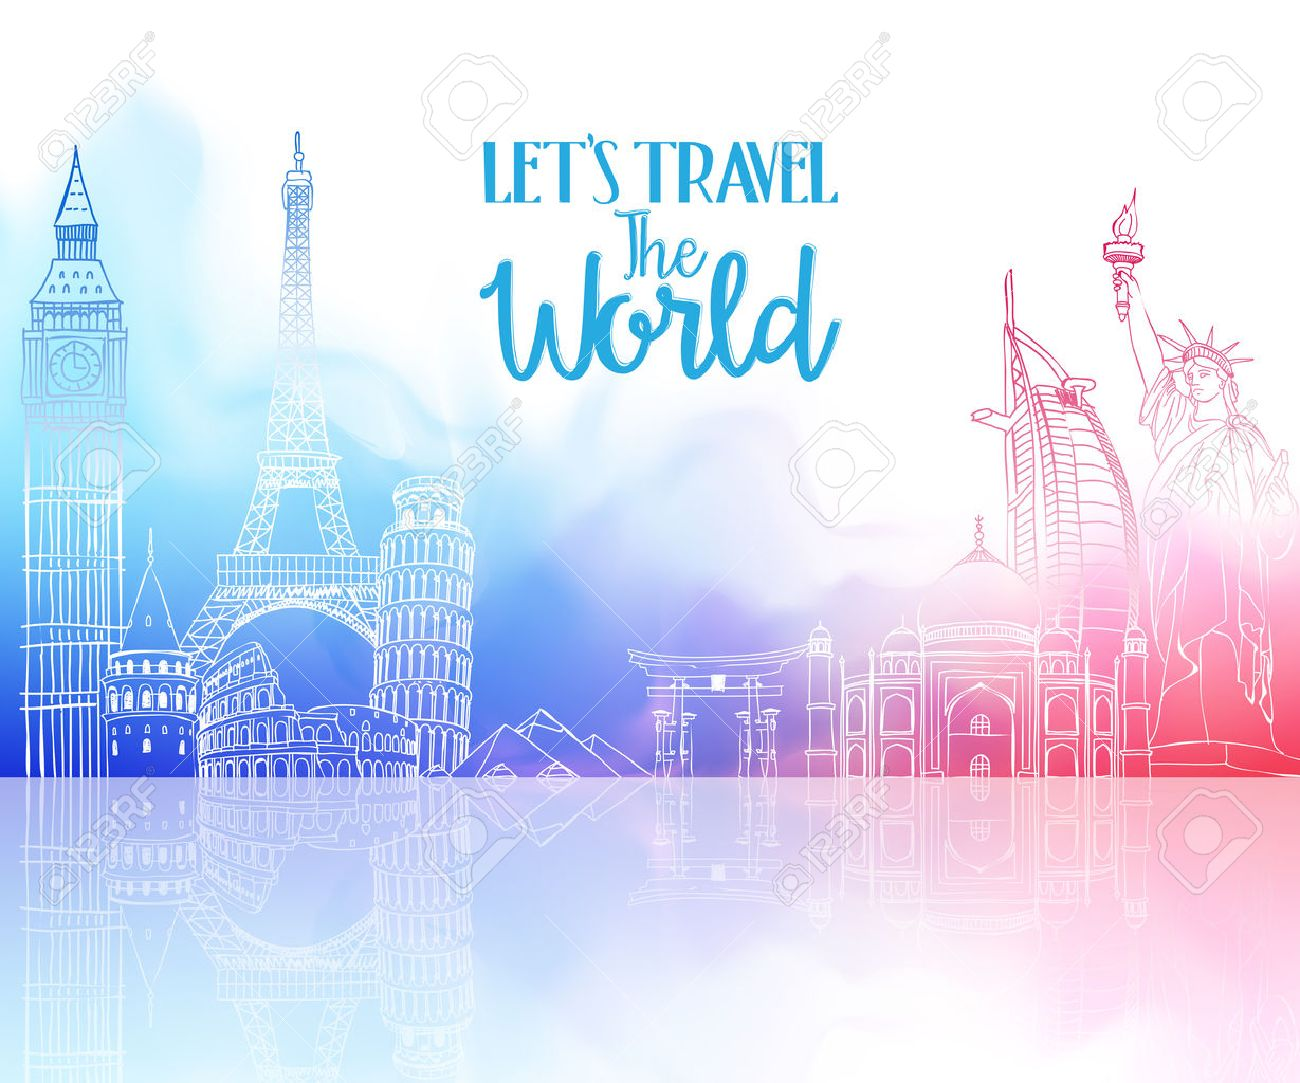 Travel The World Hand Drawing with Famous Landmarks and Places in Colorful Watercolor Background with Reflection. Vector Illustration Stock Vector - 48820352